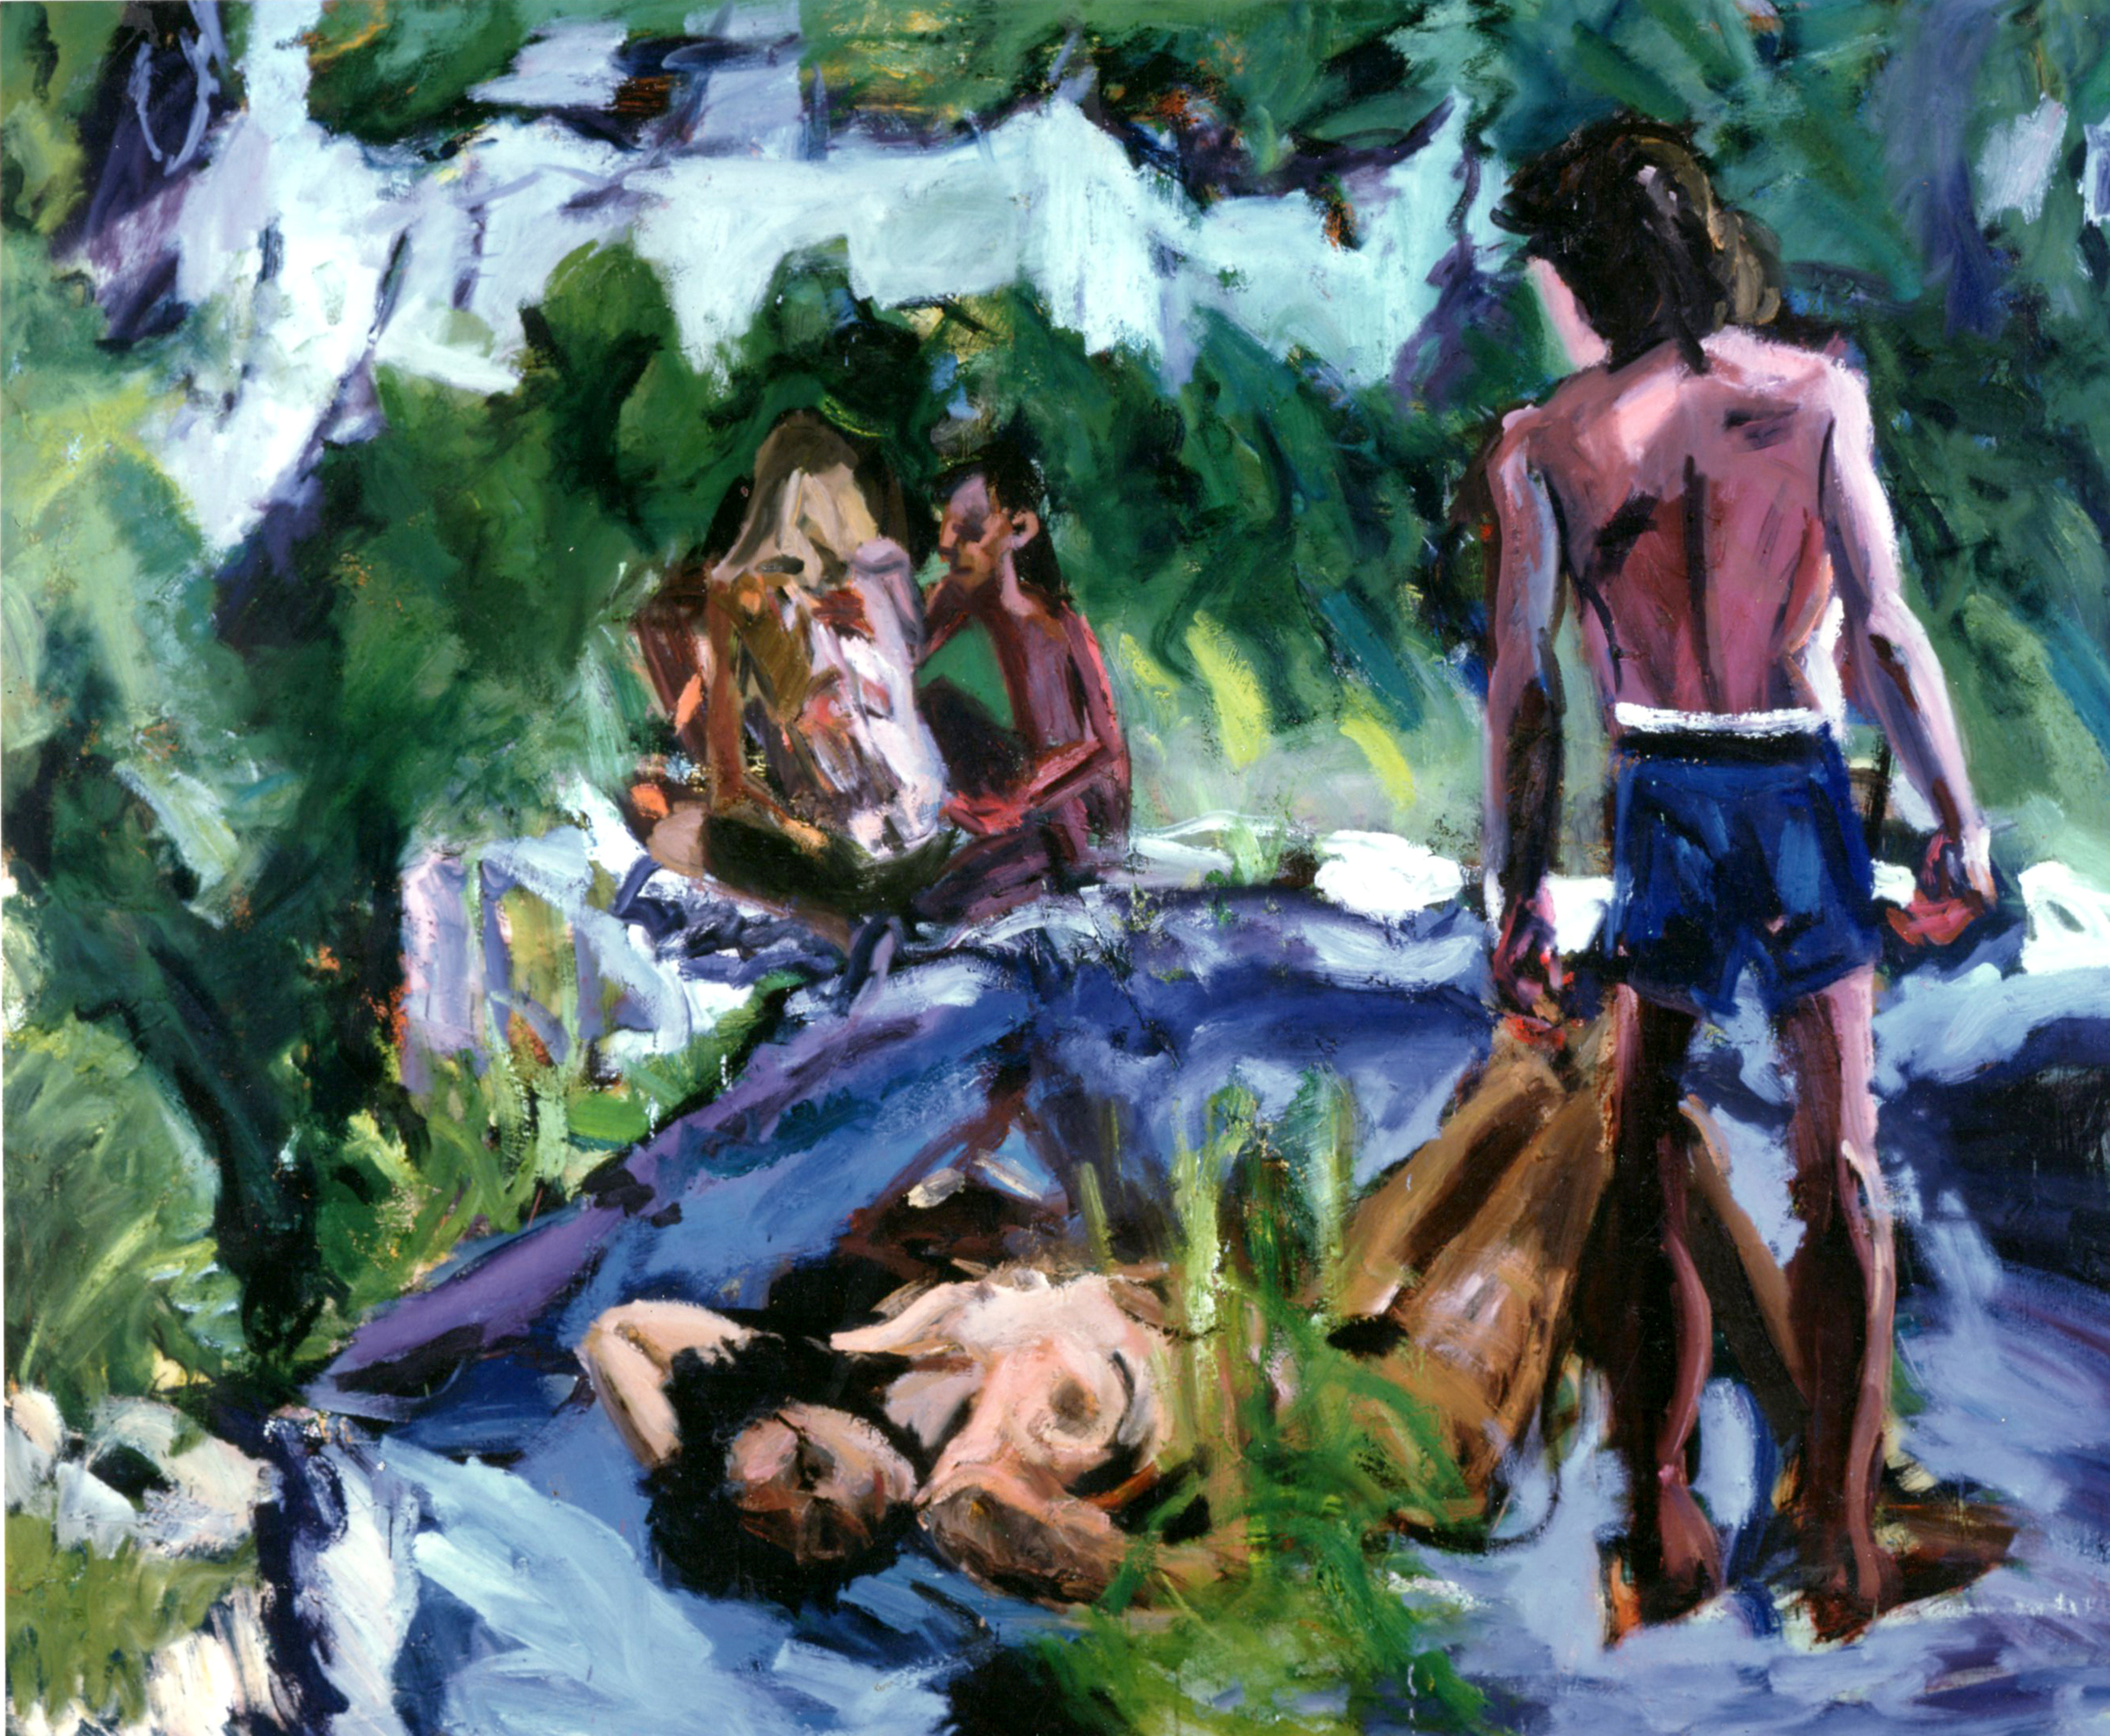 artist -ronan walsh-'they- don't- know''- 72x96ins--1996-oil painting- canvas-available-$32,000.00.alt text-fine-art-canadian-landscape- four figures-expressionist.jpg